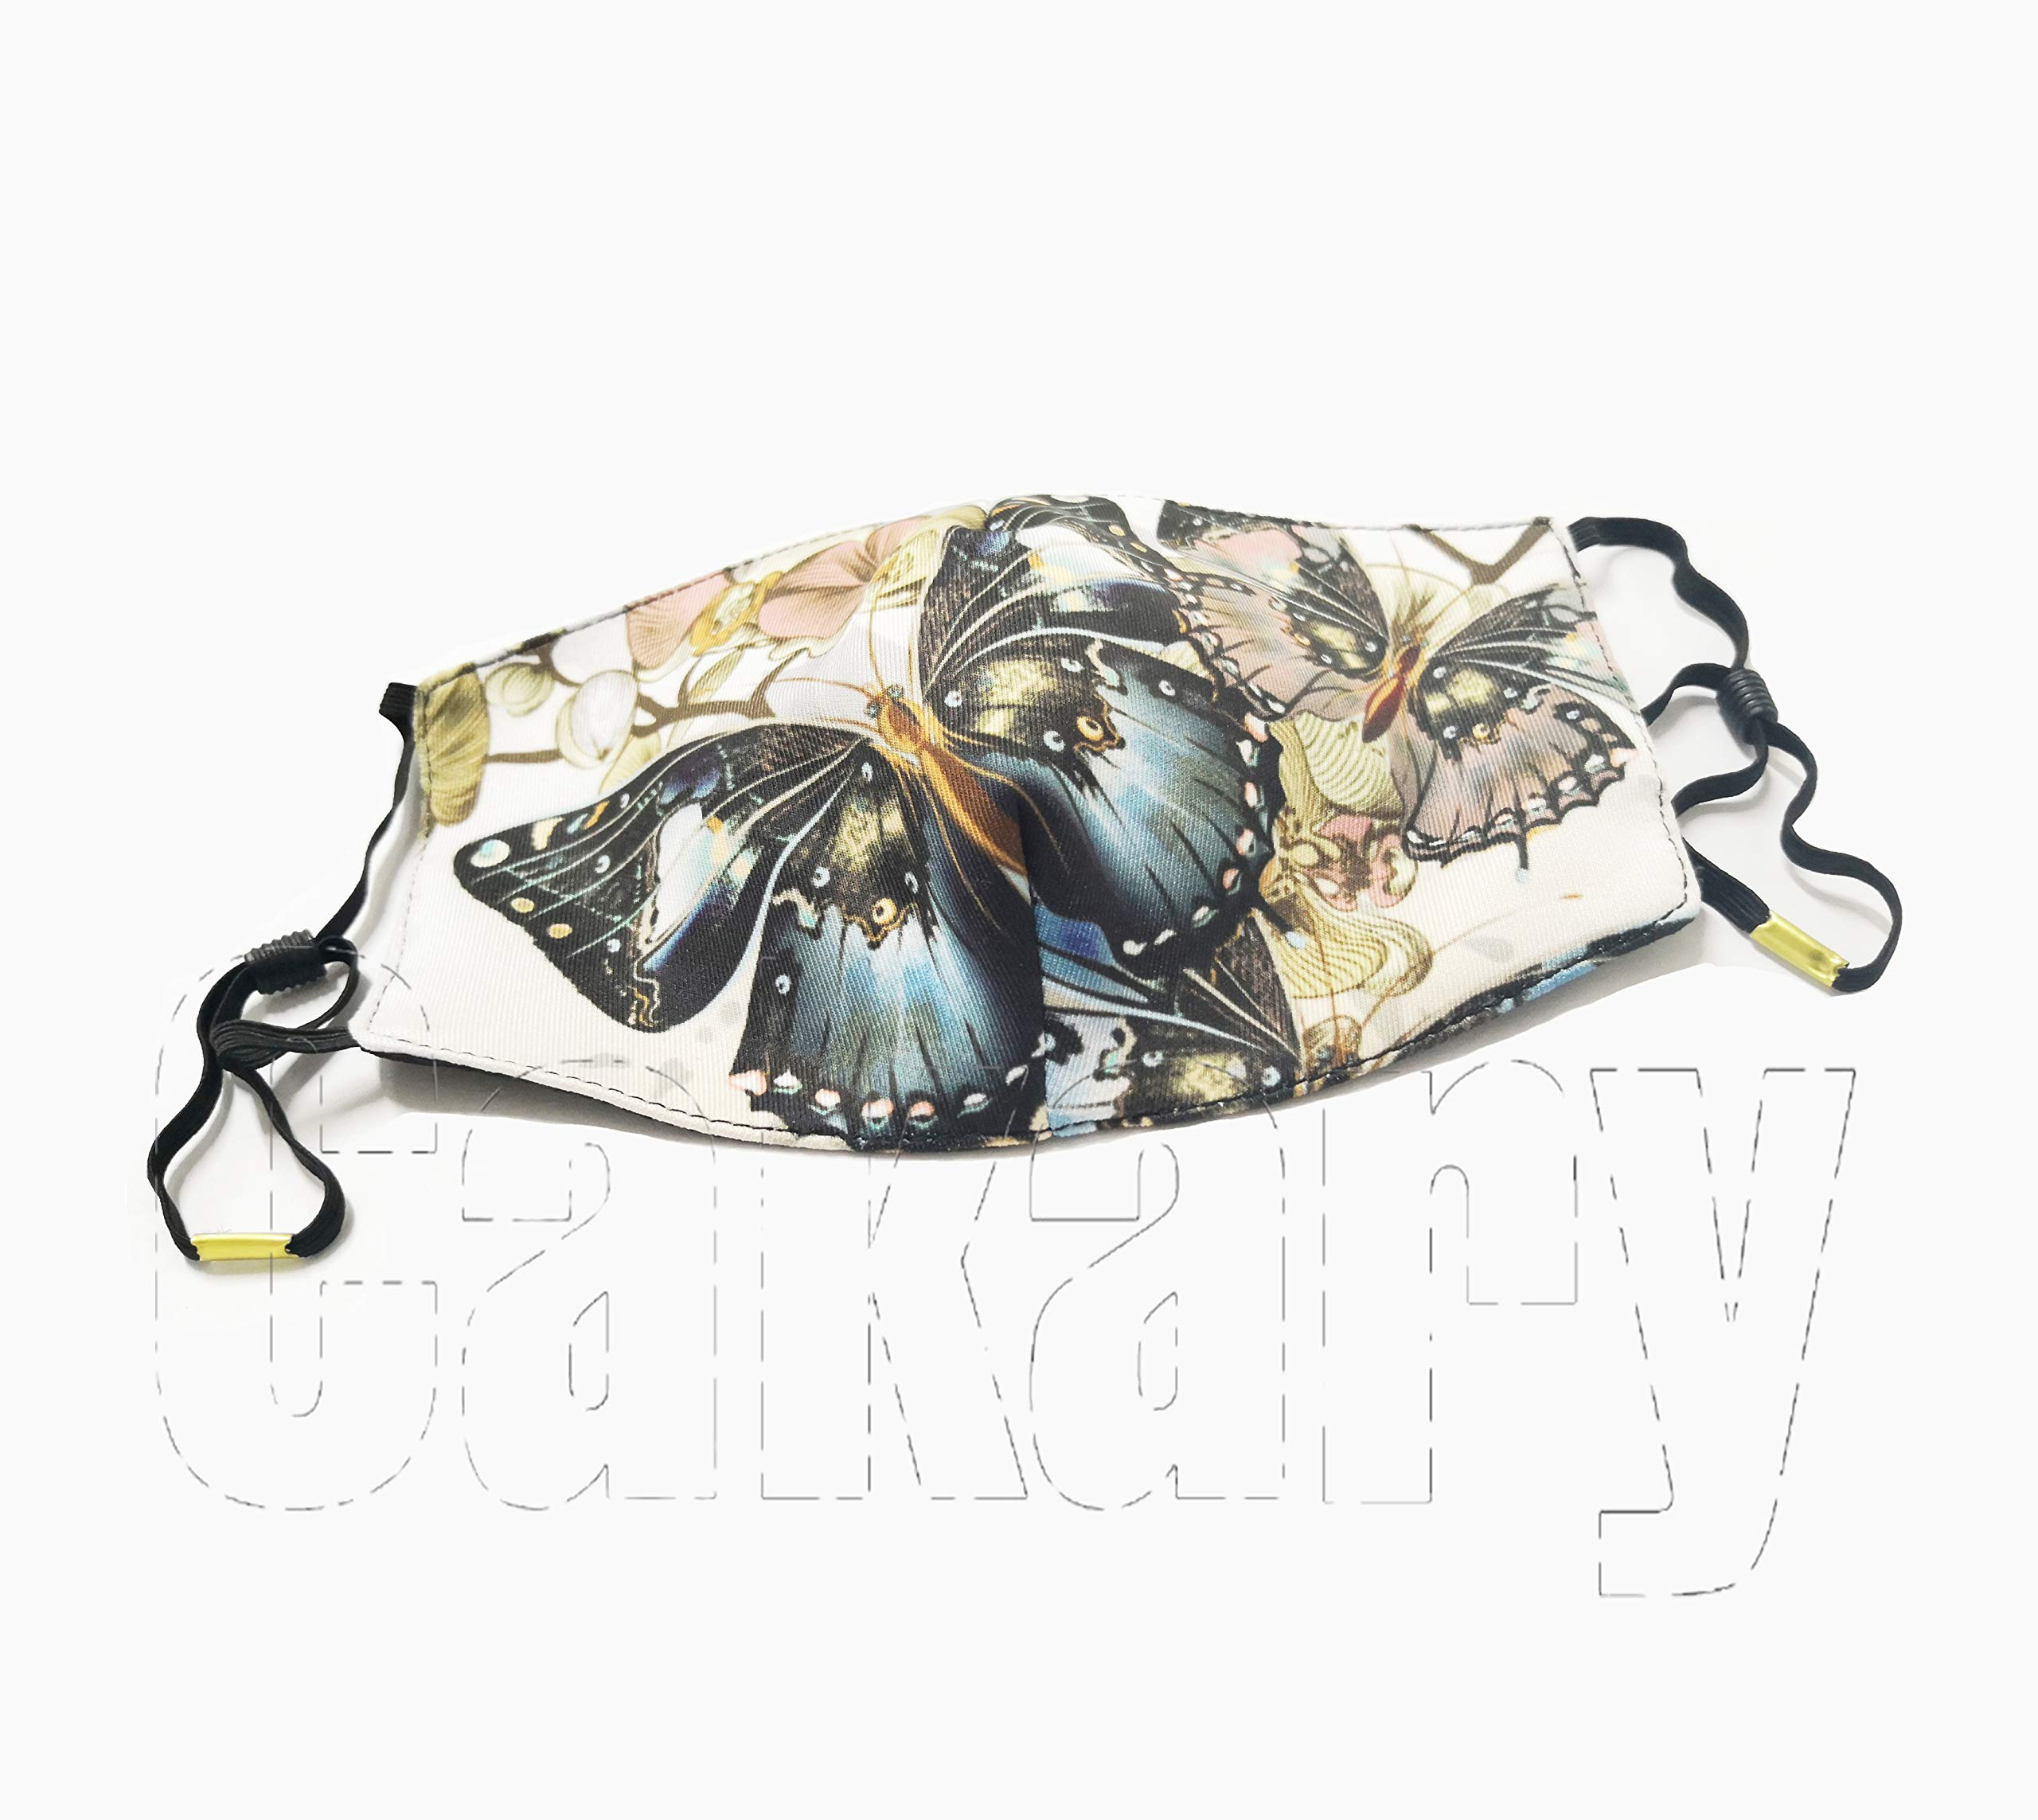 N7bloom Boys Winter Warm Mouth Anti-Dust Flu Face Mask Orchid Butterfly by N7bloom (Image #5)